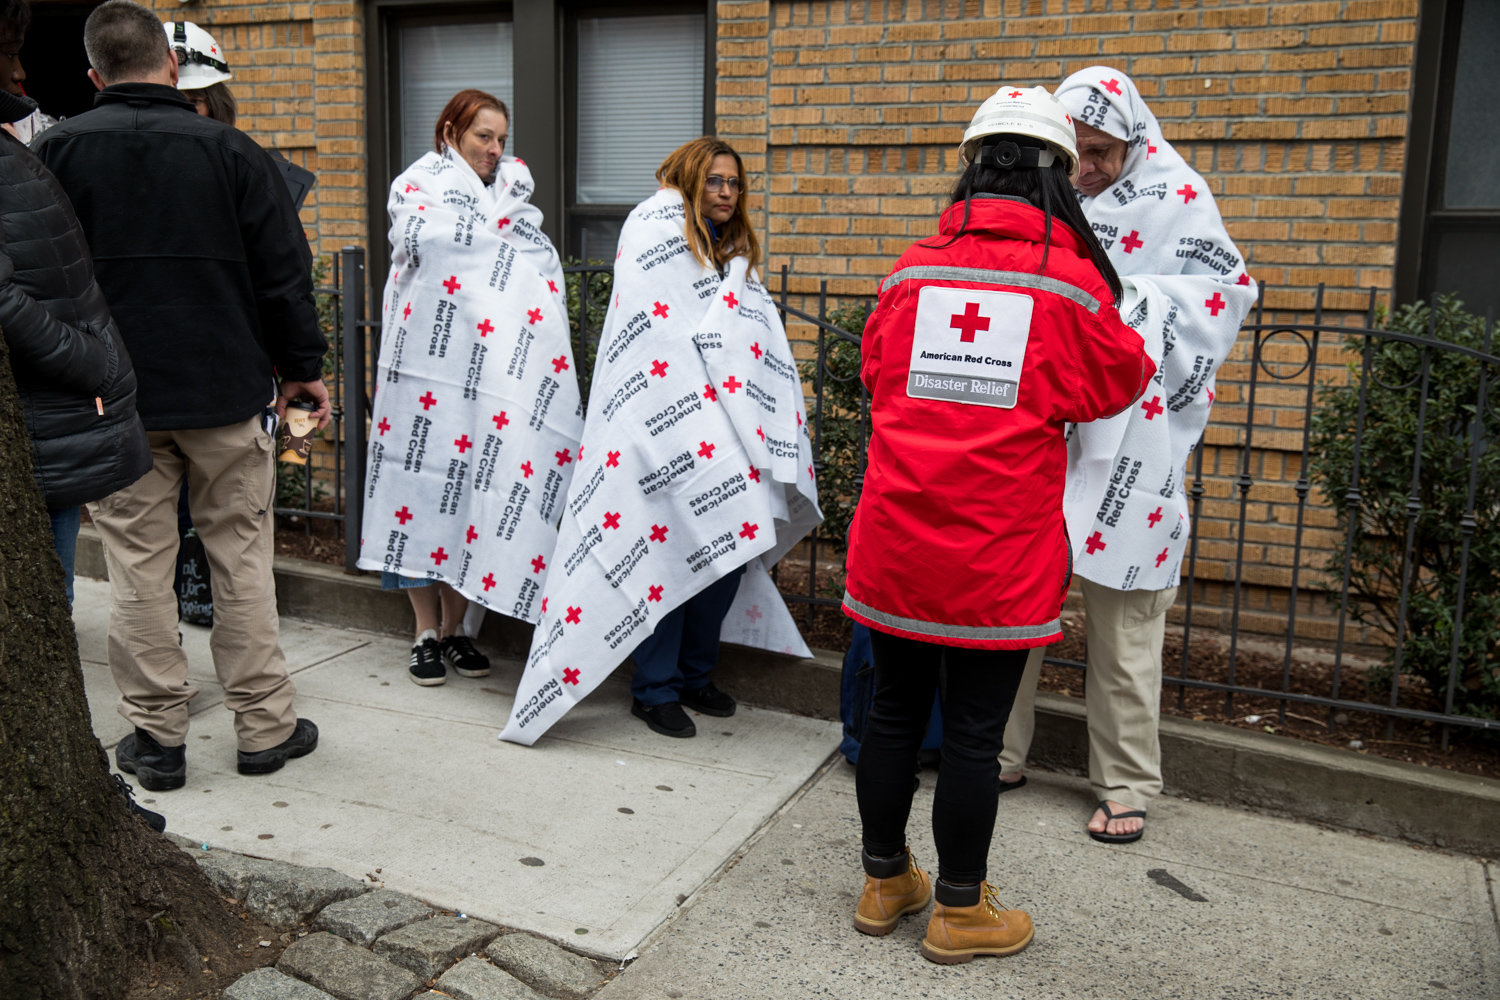 A member of the American Red Cross helps residents of 215 W. 242nd St., where a fire broke out Friday morning.